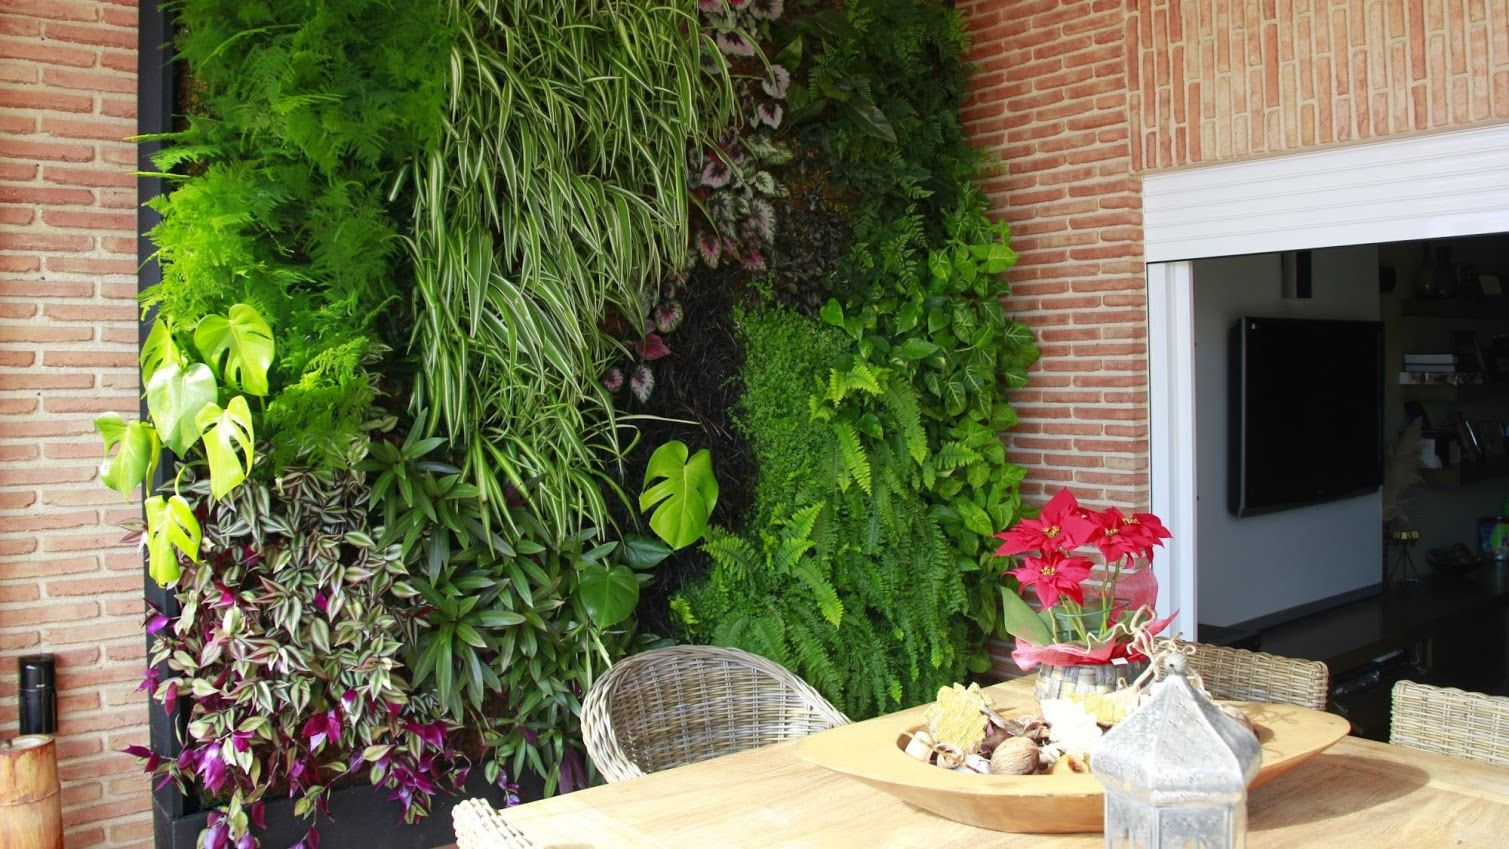 Jard n vertical interior jardines verticales interiores for Jardines interiores